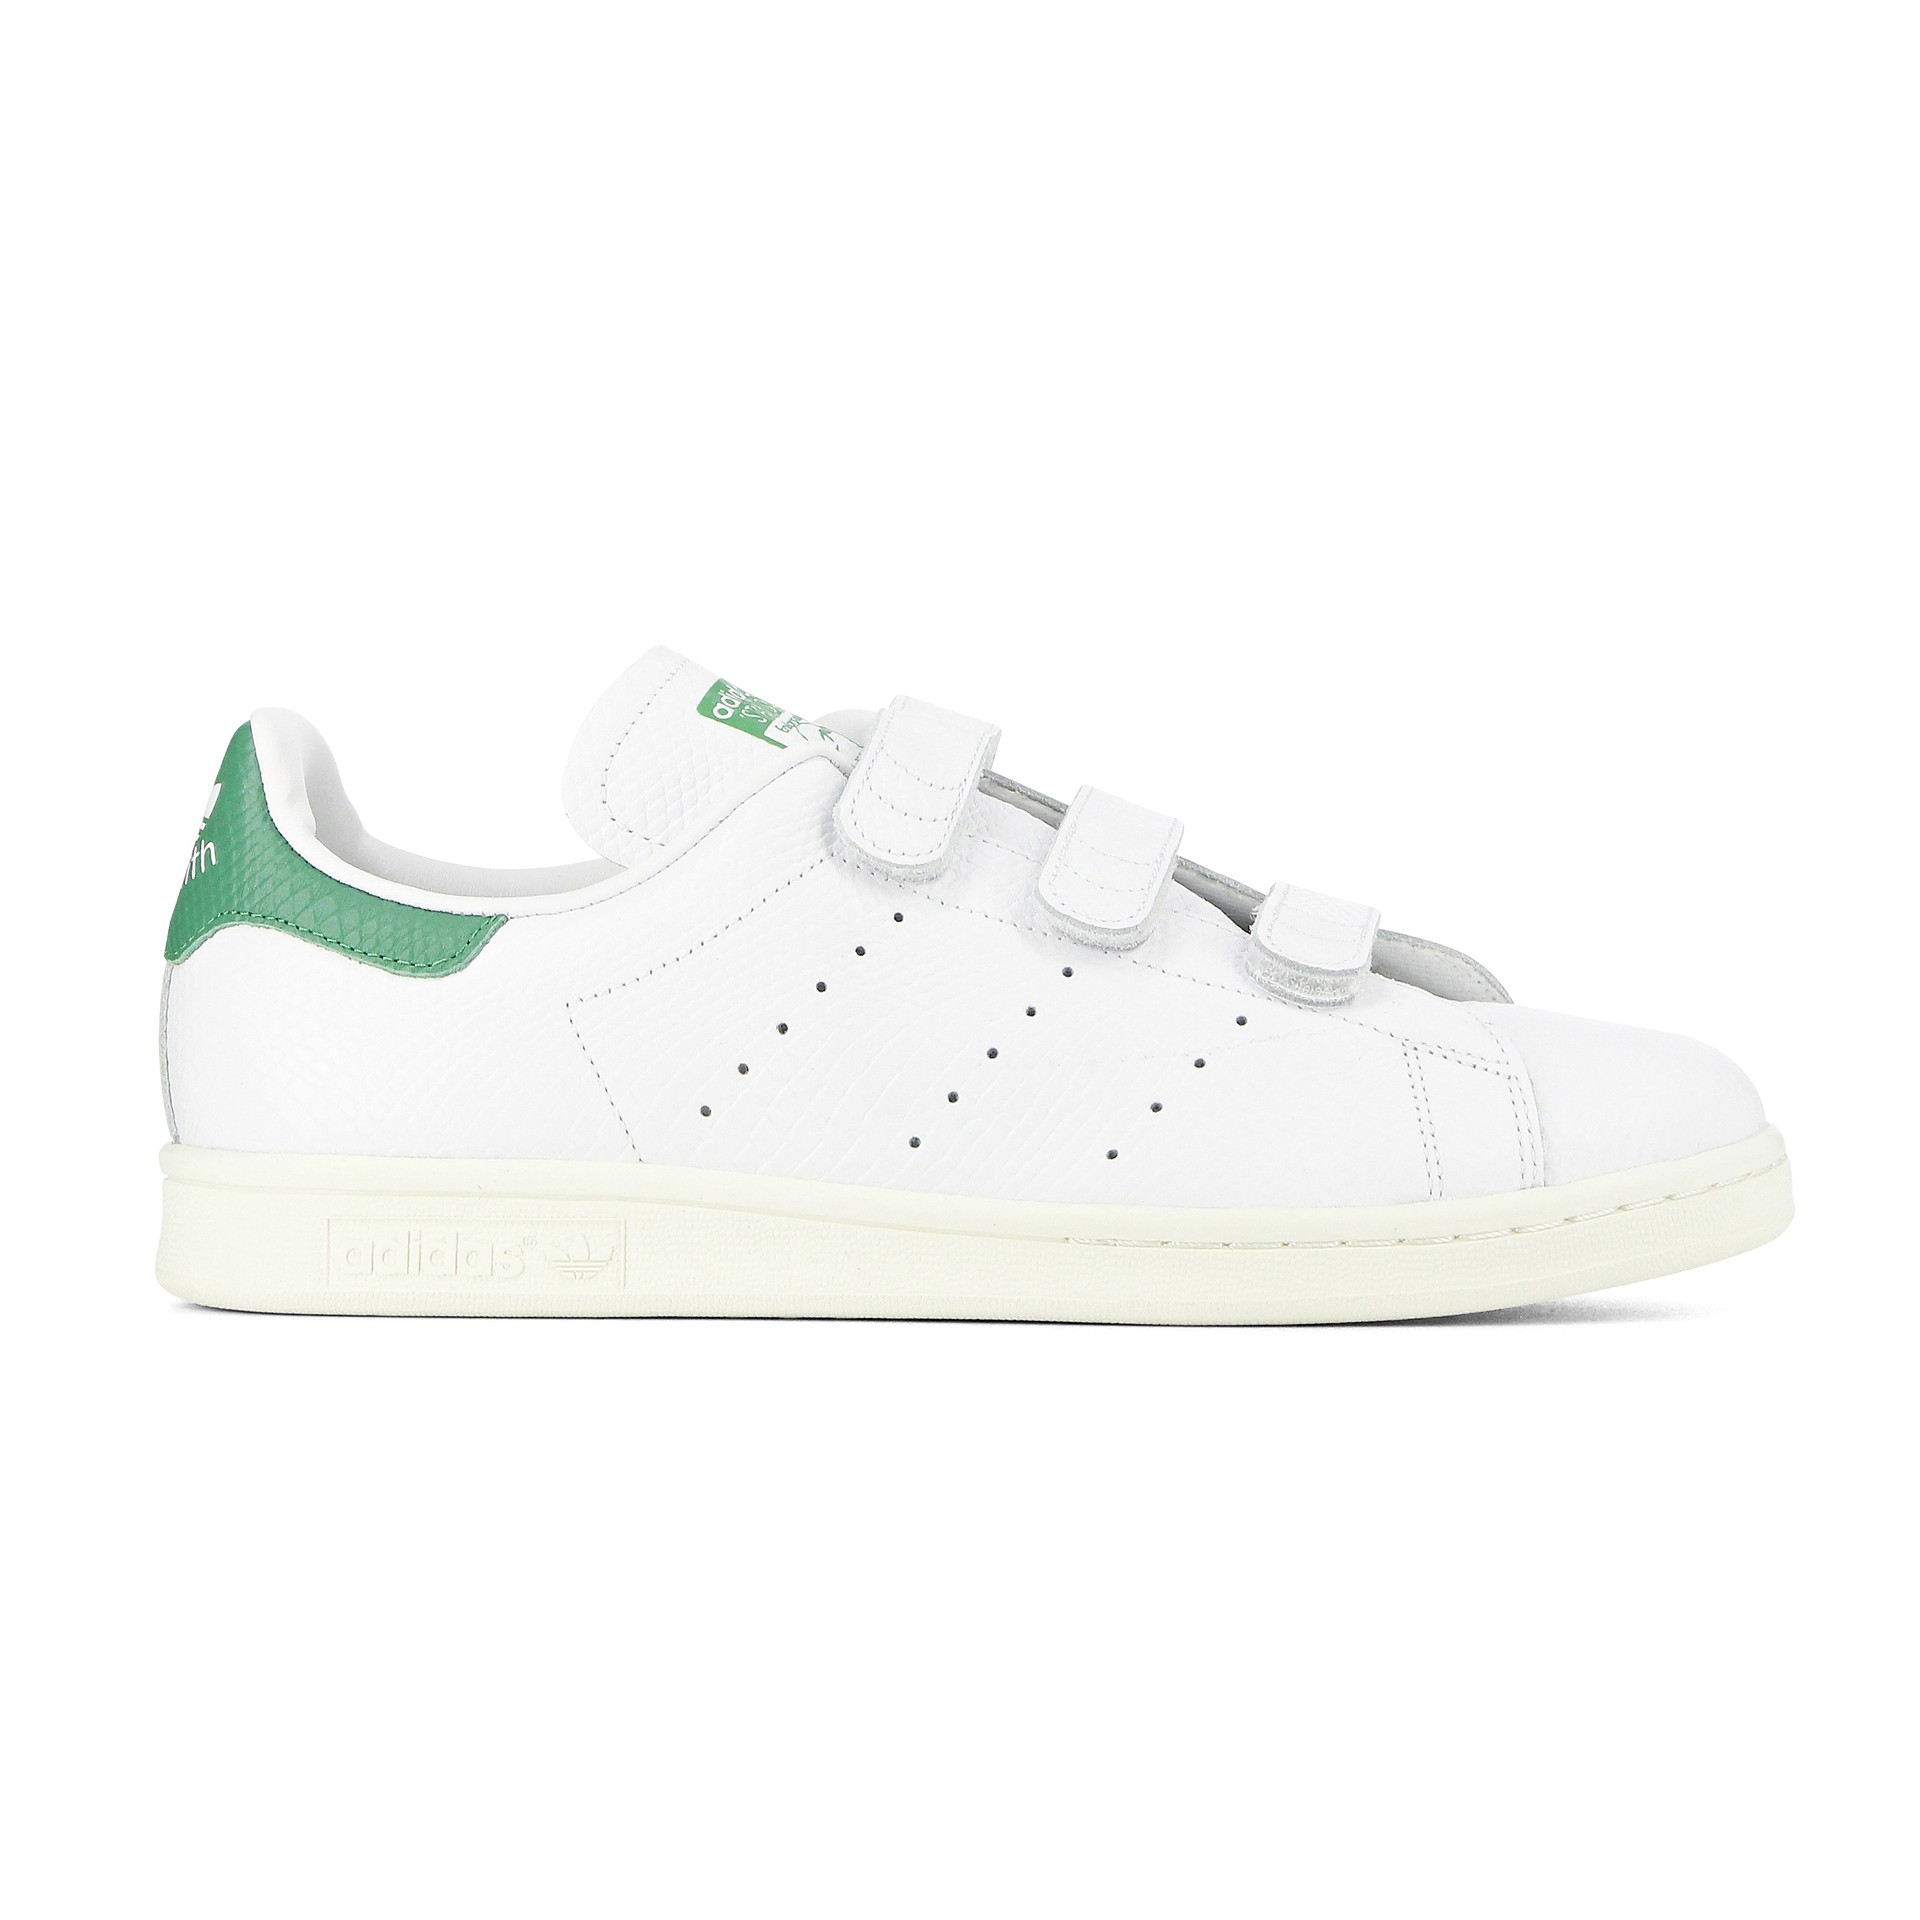 outlet Braderie ramasser Stan smith femme rouge a scratch - Chaussure - lescahiersdalter